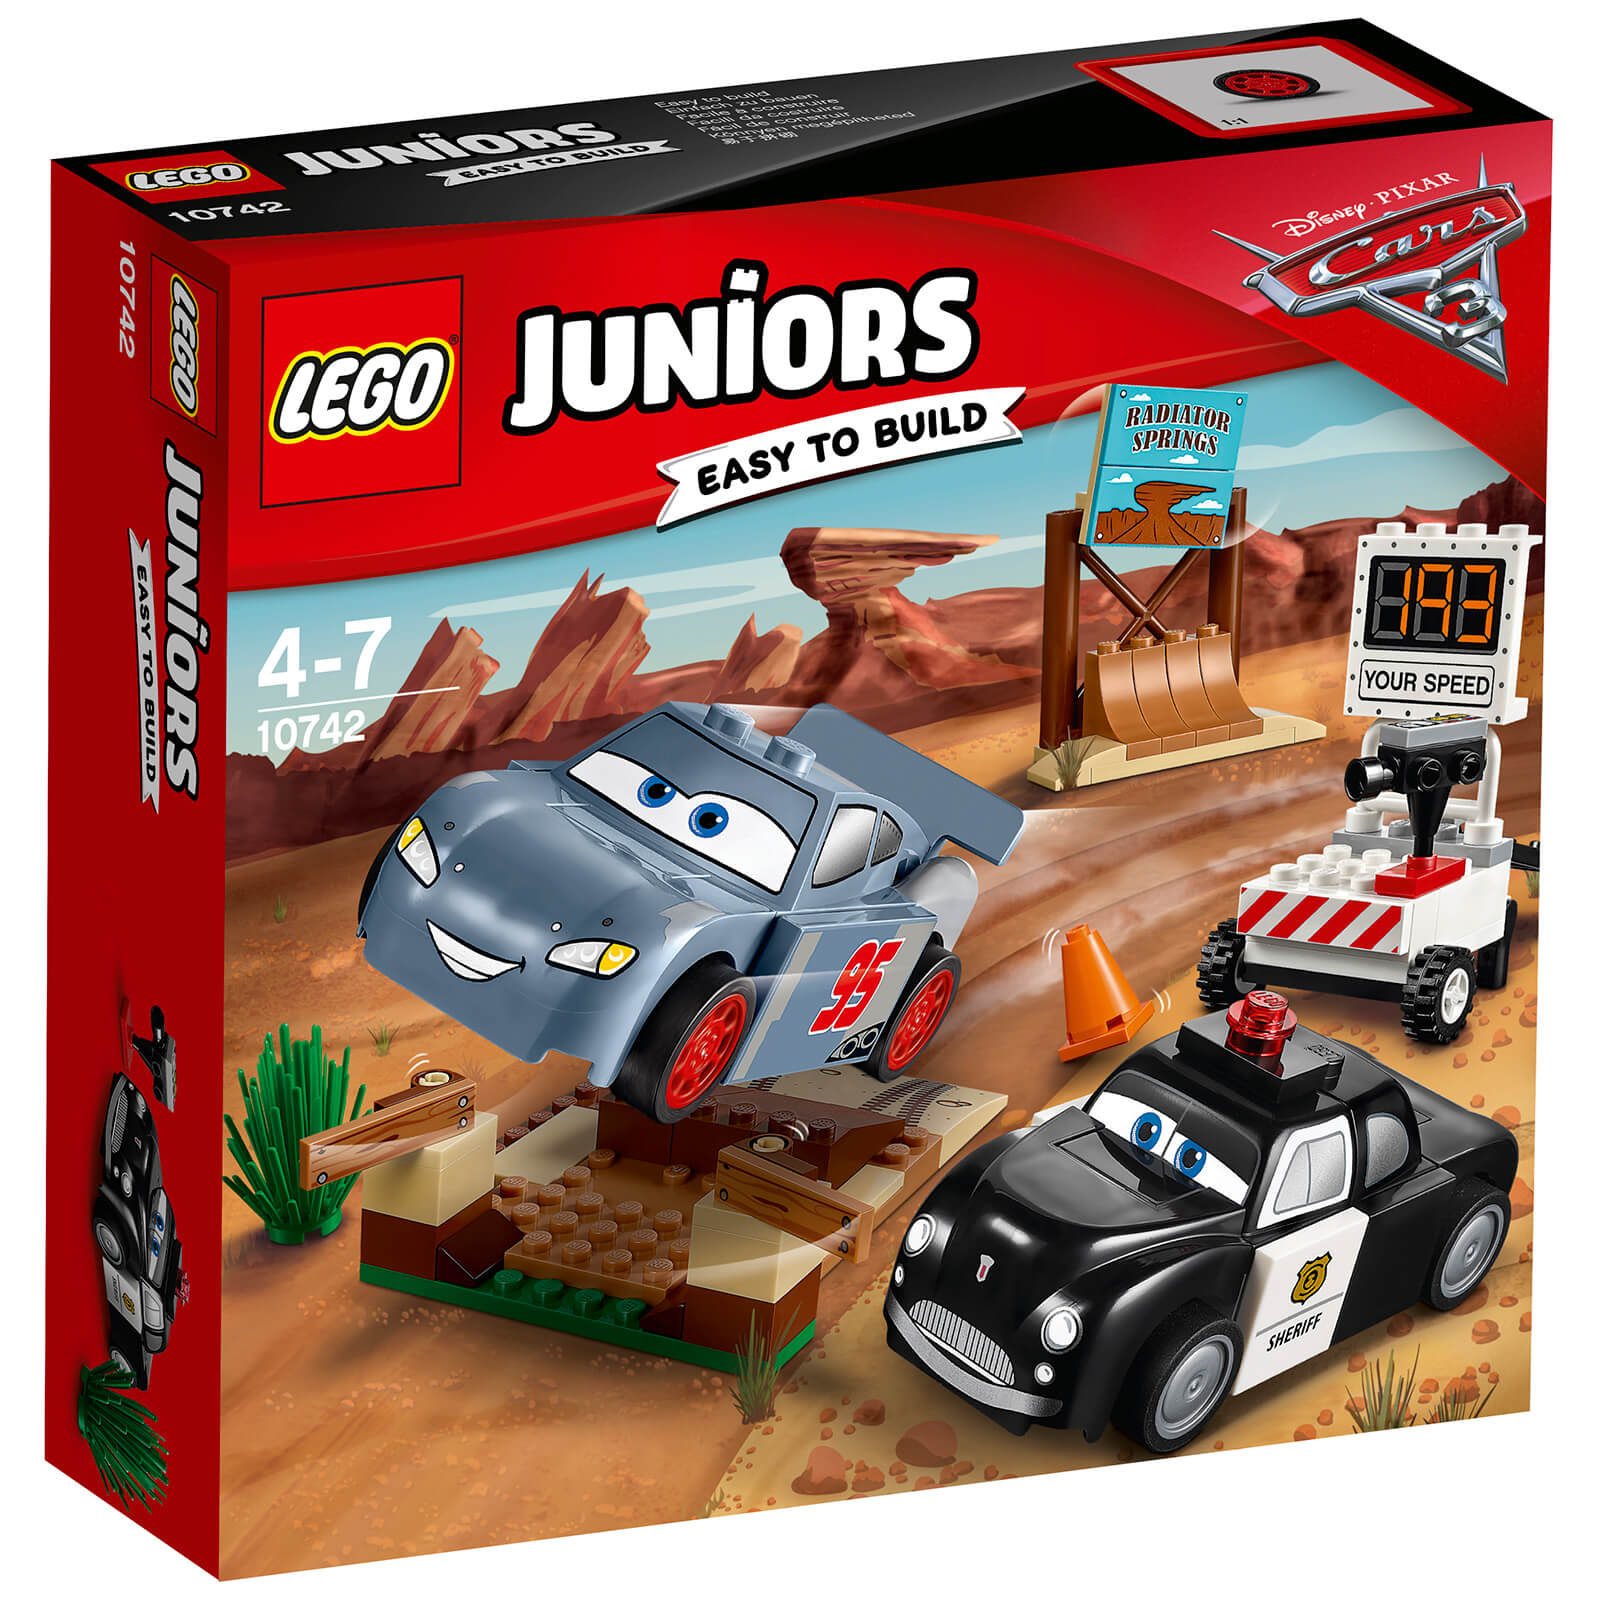 LEGO Juniors: Cars 3 Willy